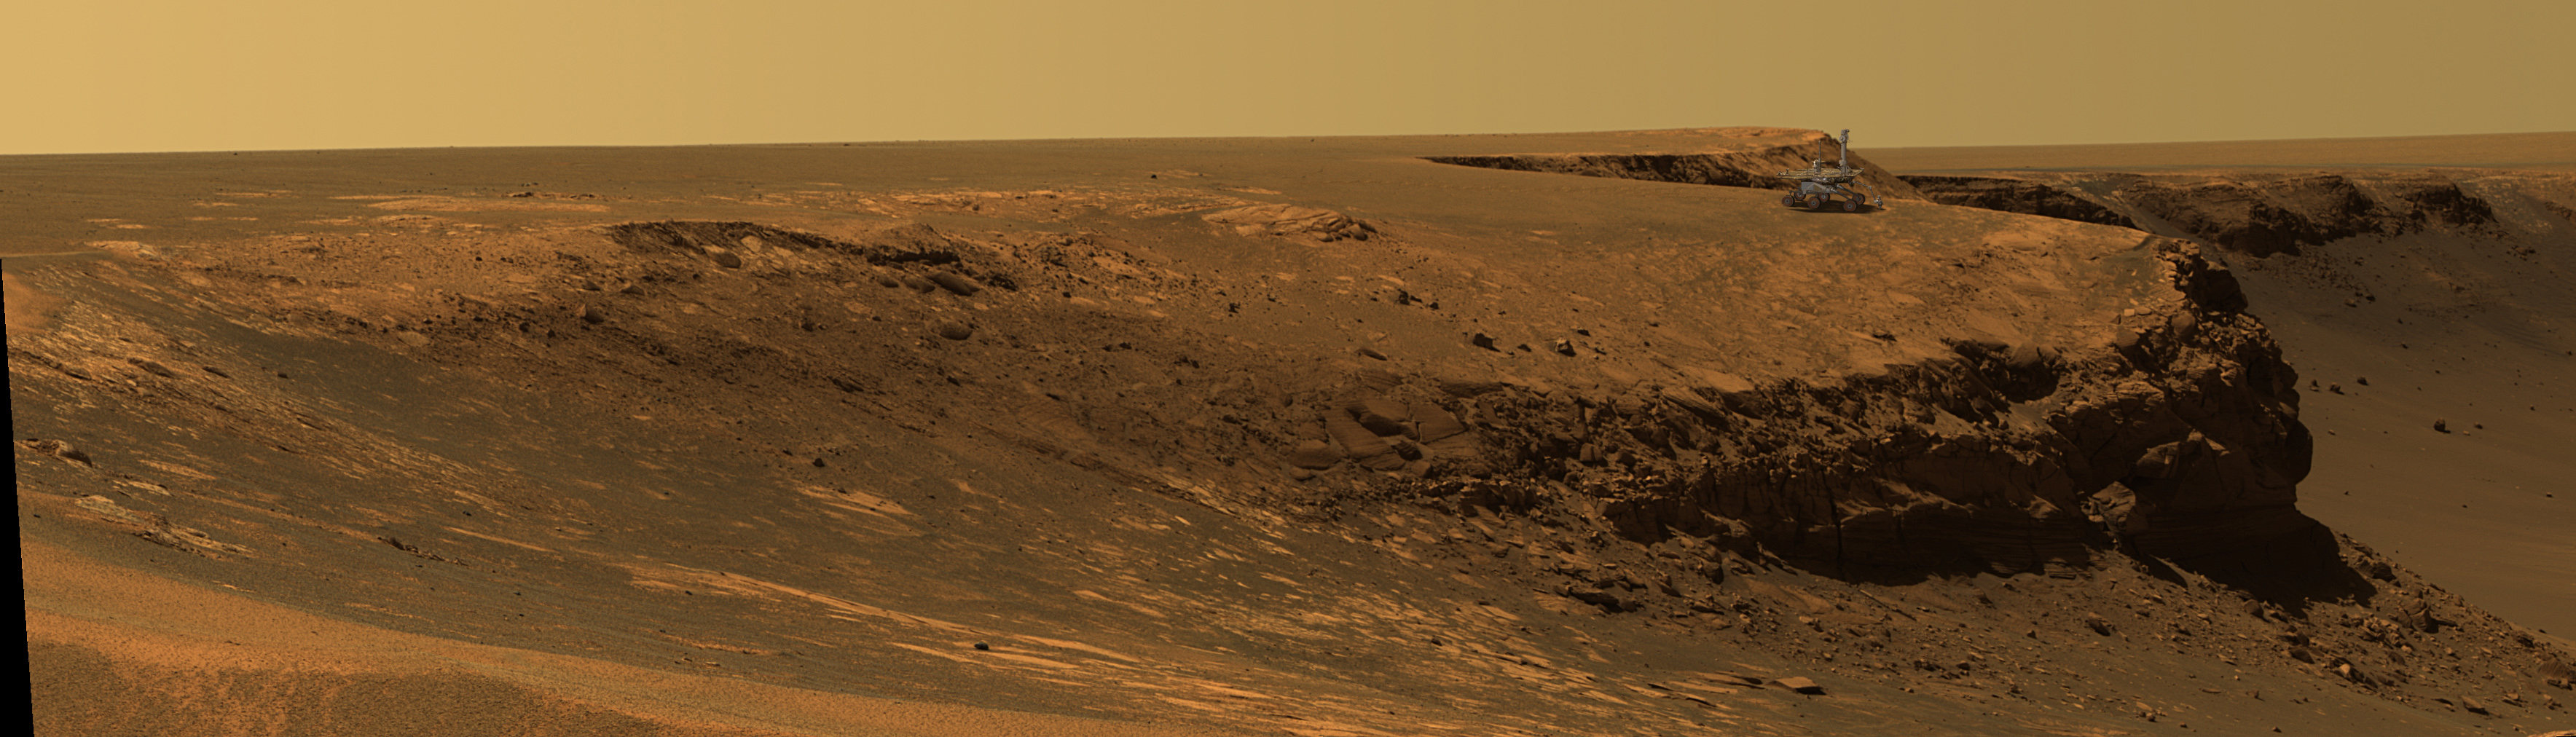 Mars Exploration Rover Mission: Special-Effects Images ...